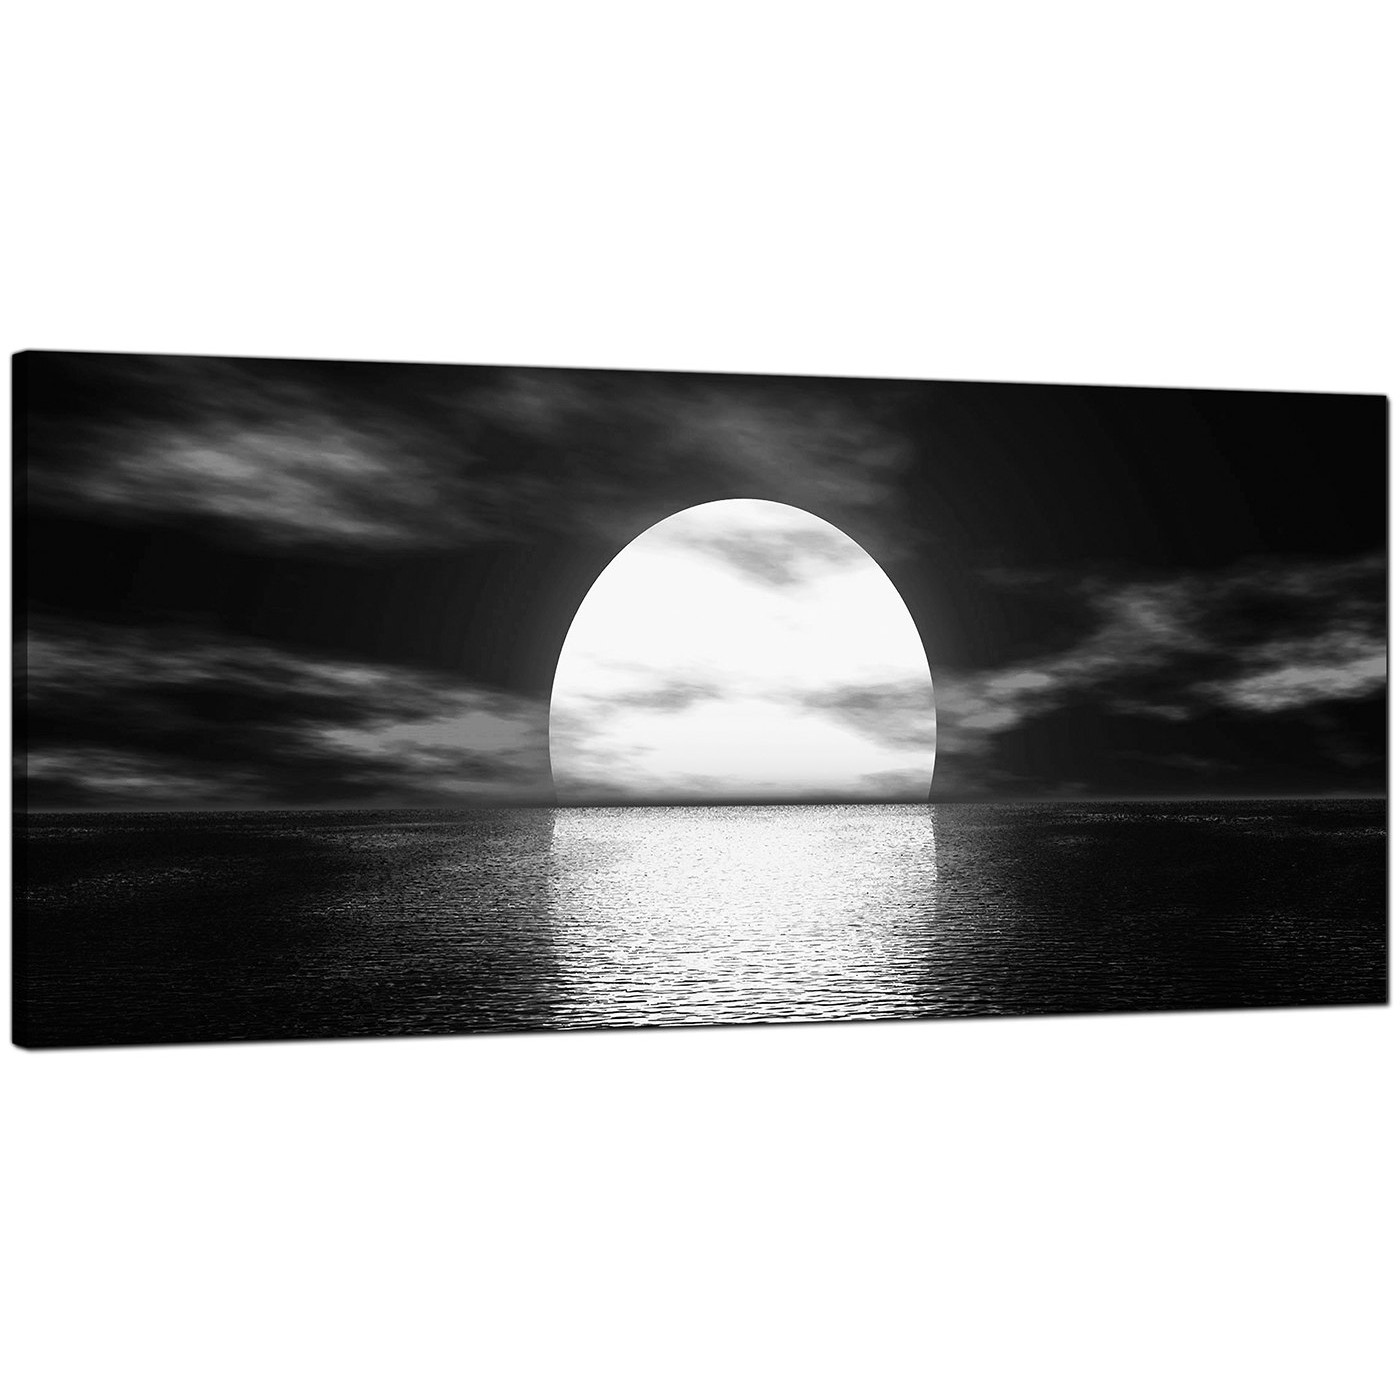 Black And White Canvas Wall Art modern black and white canvas wall art of an ocean sunset